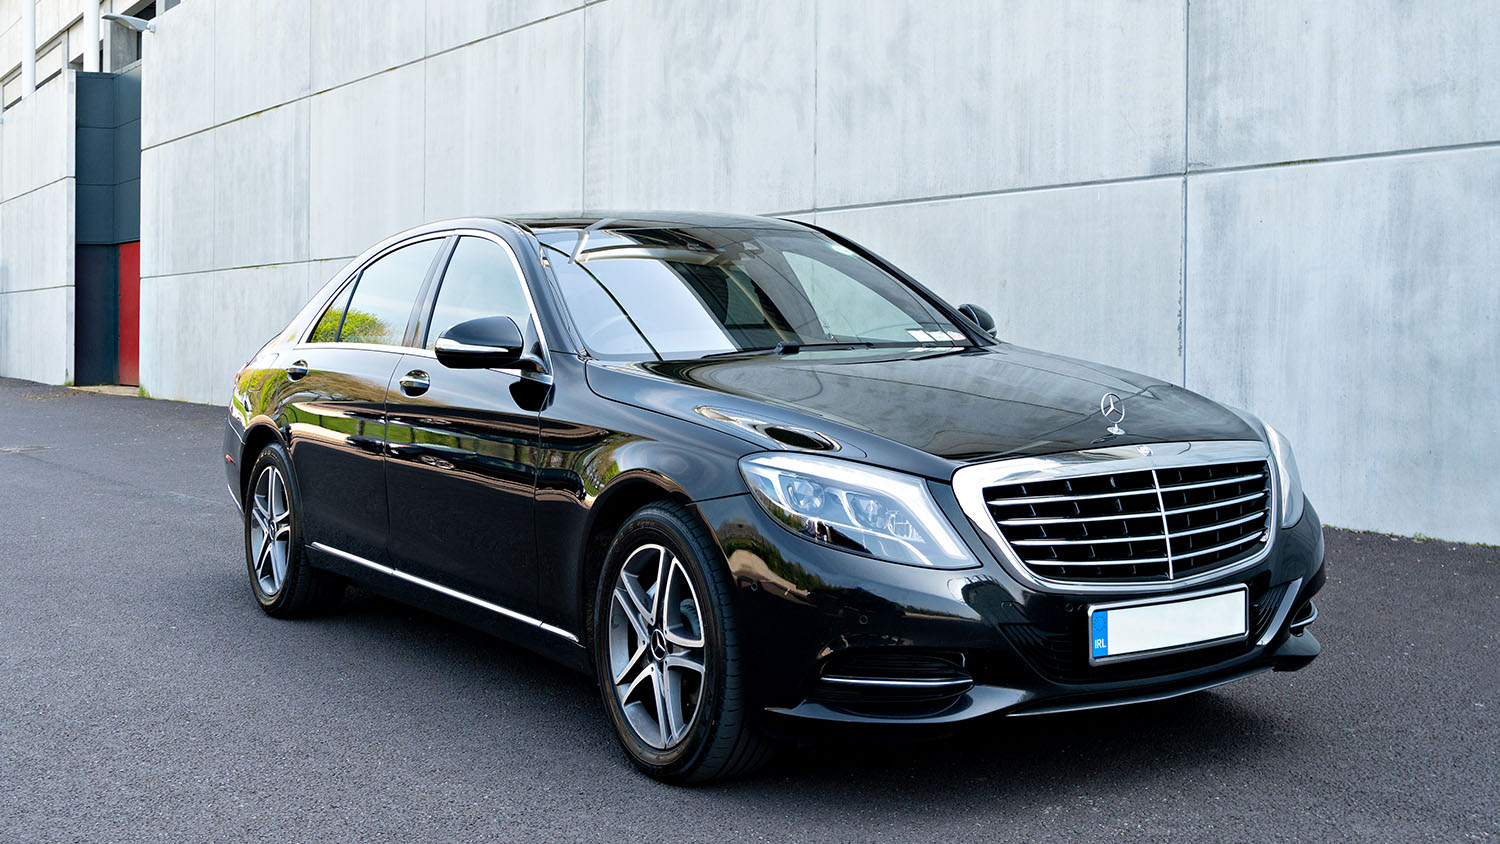 Choose from a range of high-quality Mercedes cars and vehicles for your executive and VIP transfers in Ireland.